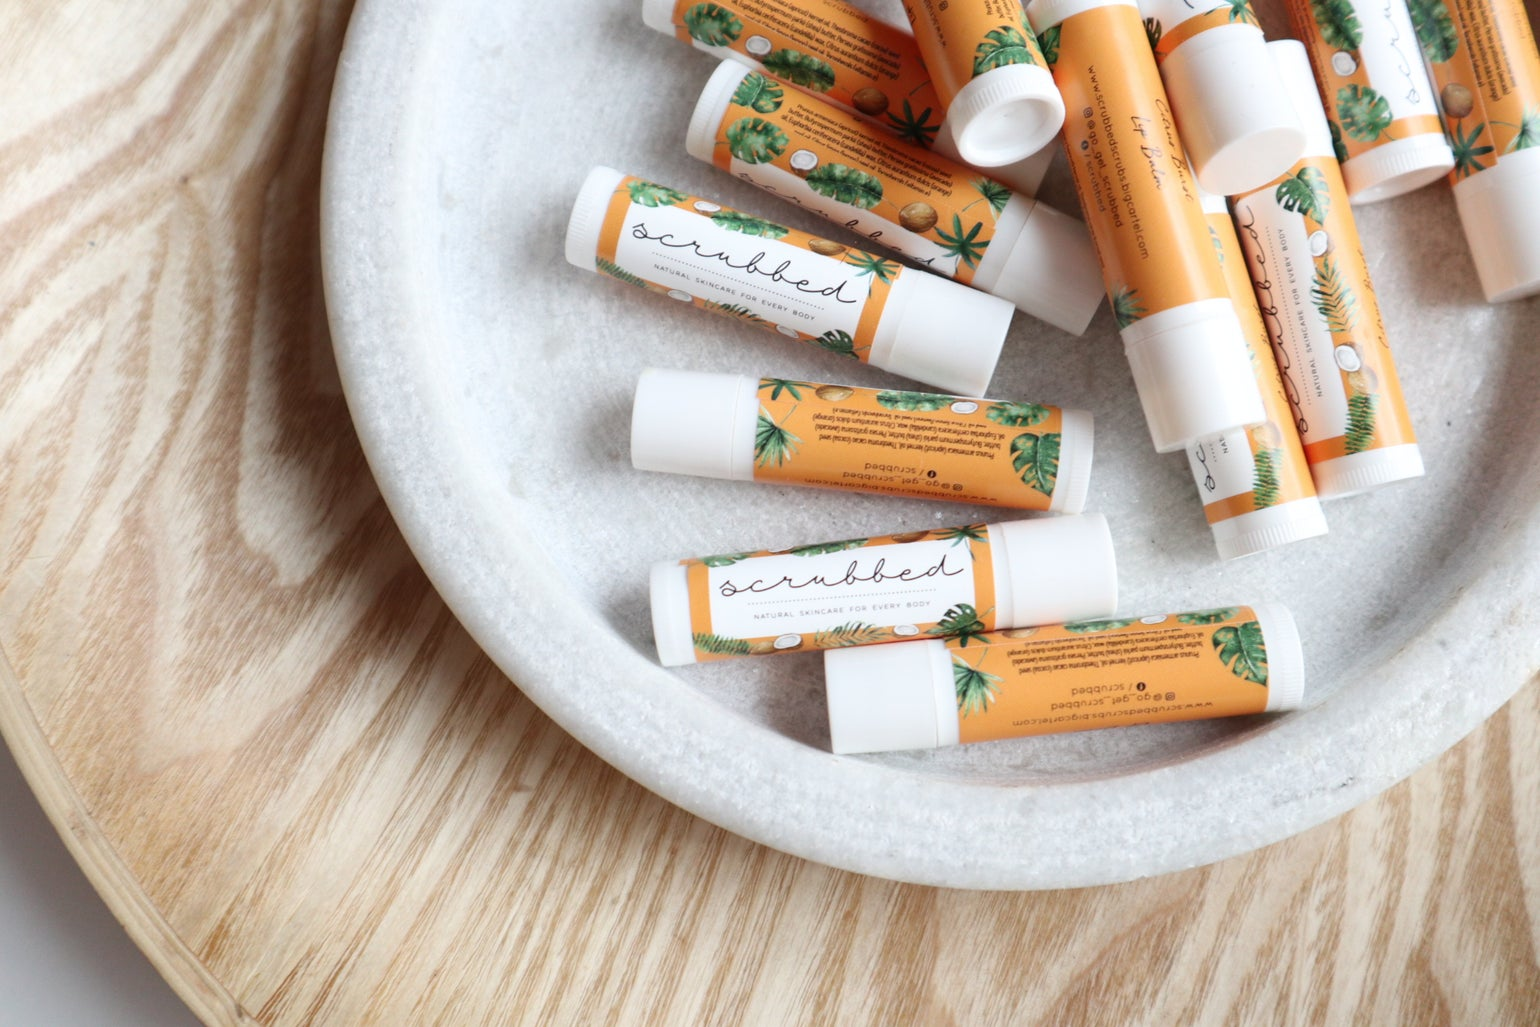 Image of Citrus Burst VEGAN Lip Balm.